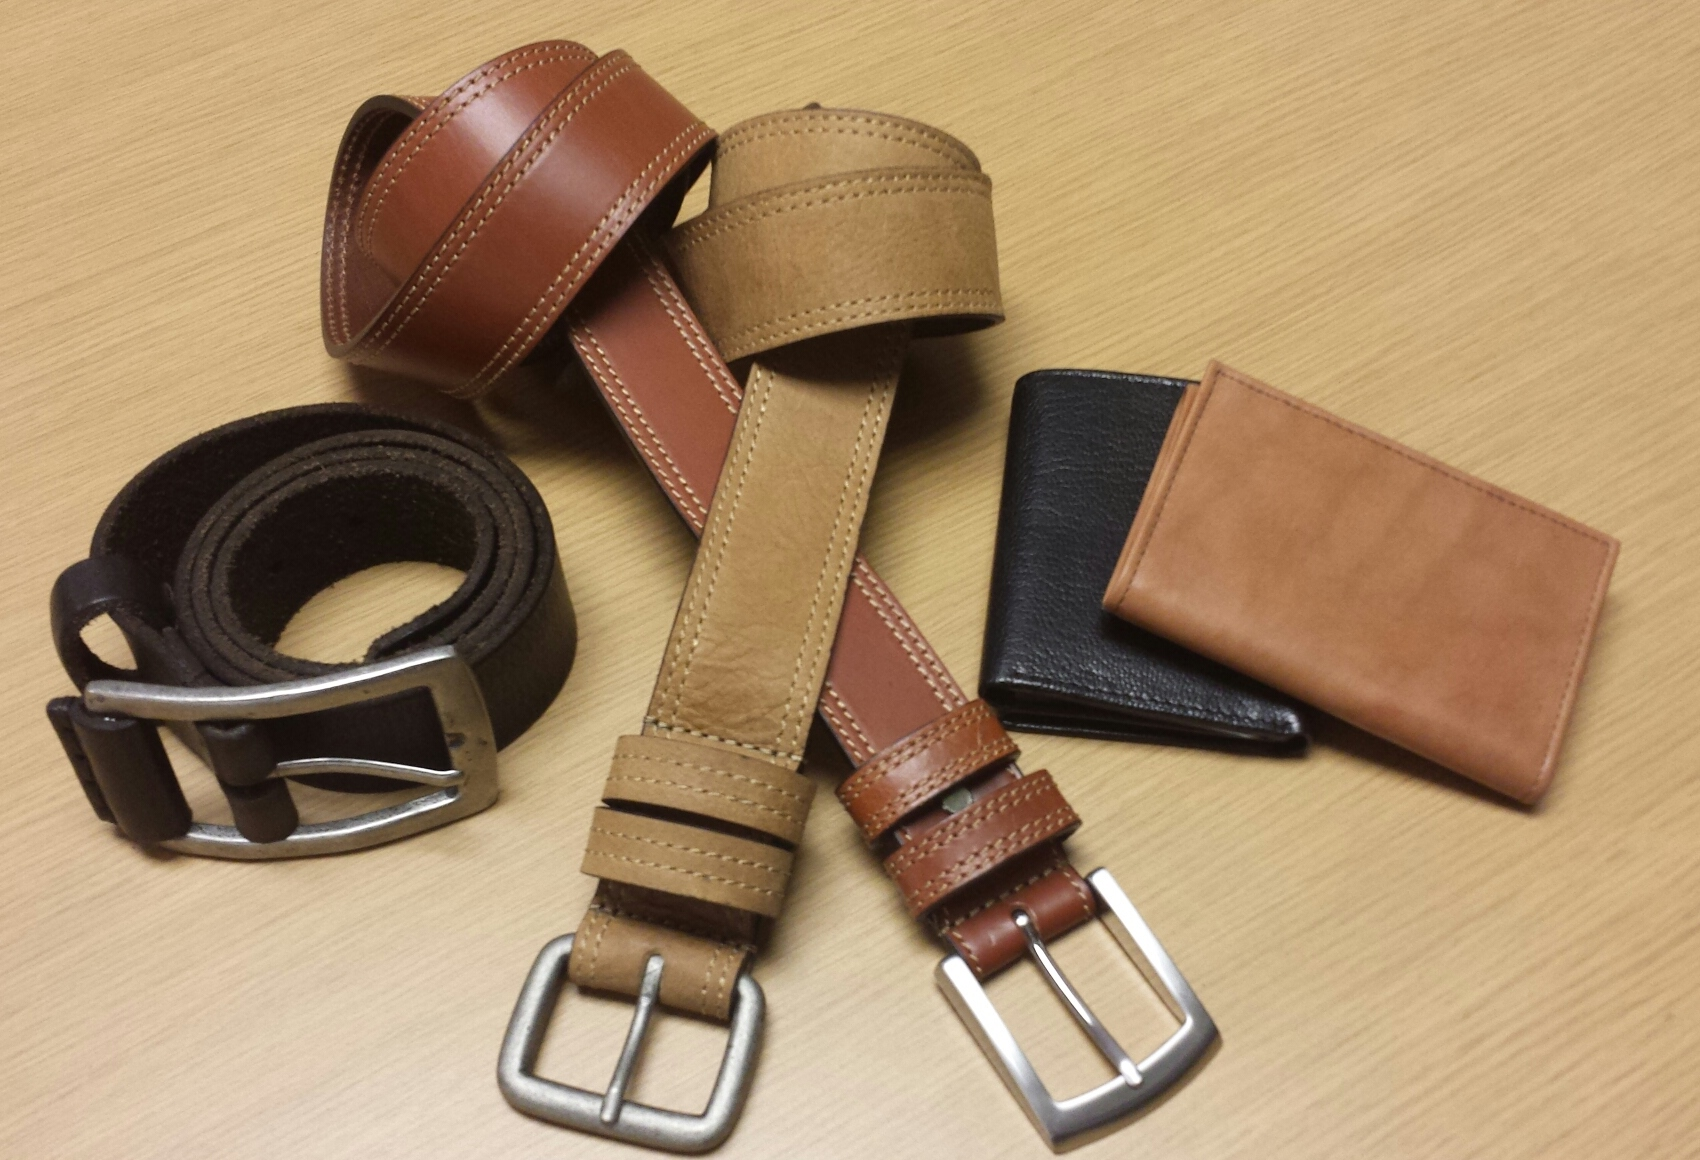 Finished Leather Goods